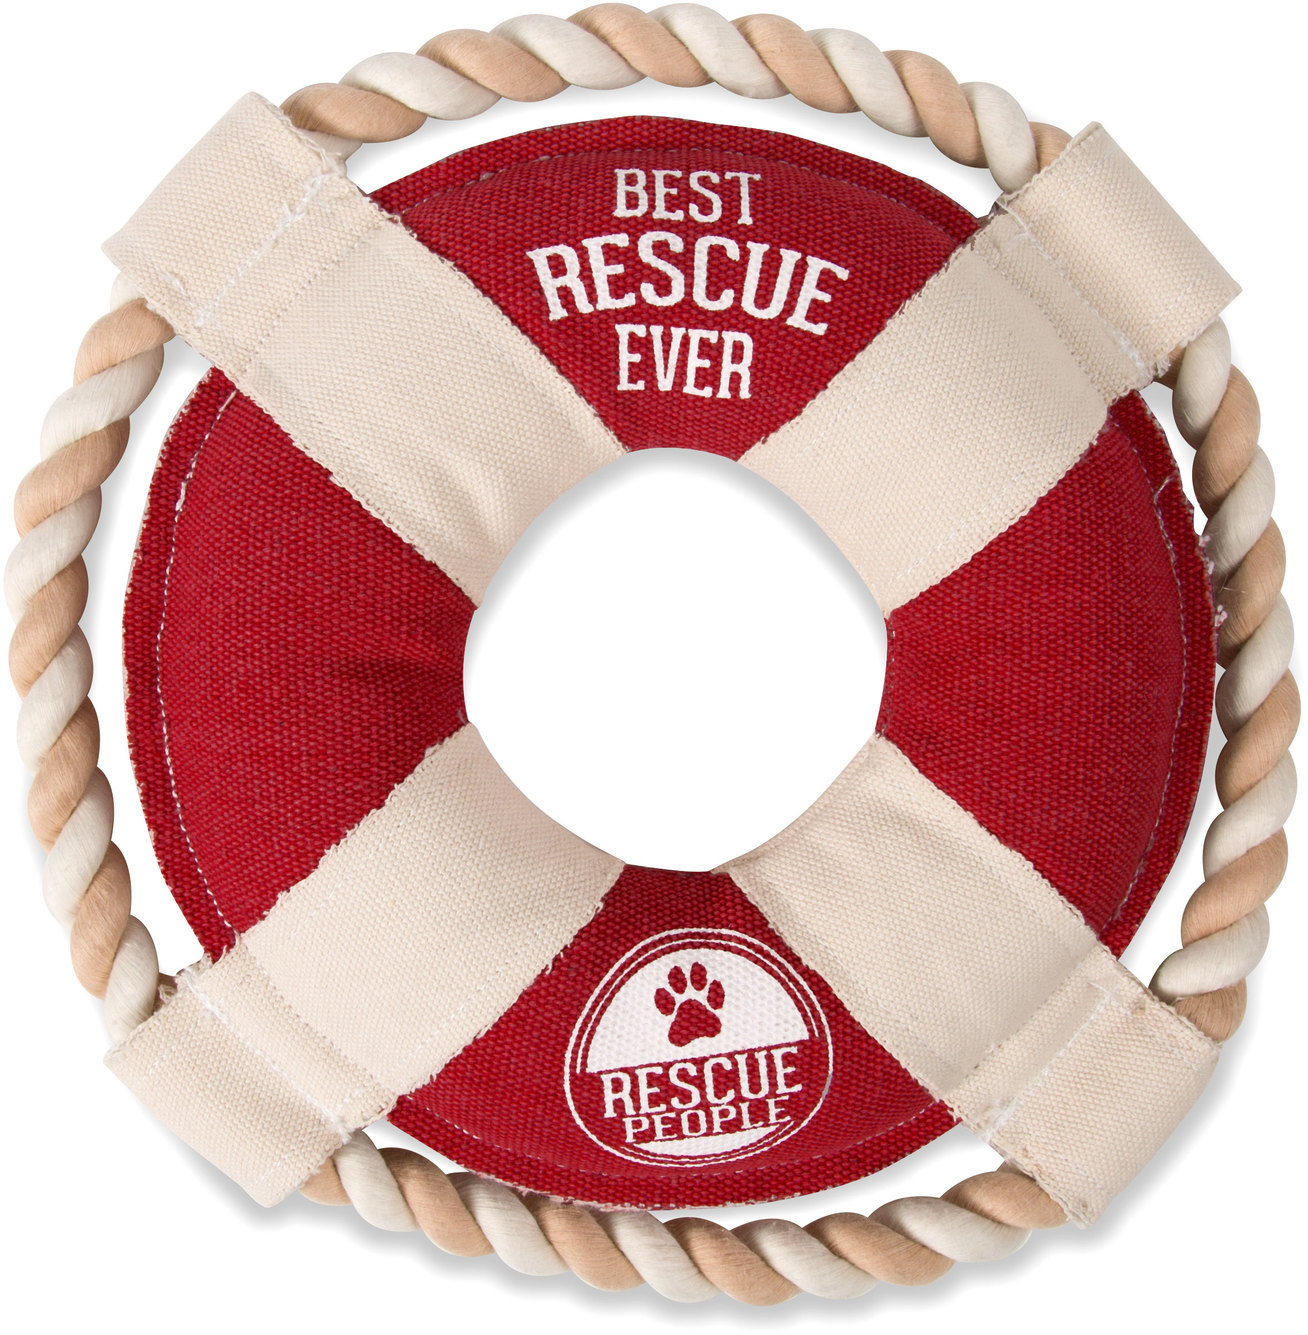 "Best Rescue Ever by We Pets - Best Rescue Ever - 11"" Canvas Dog Toy on Rope"